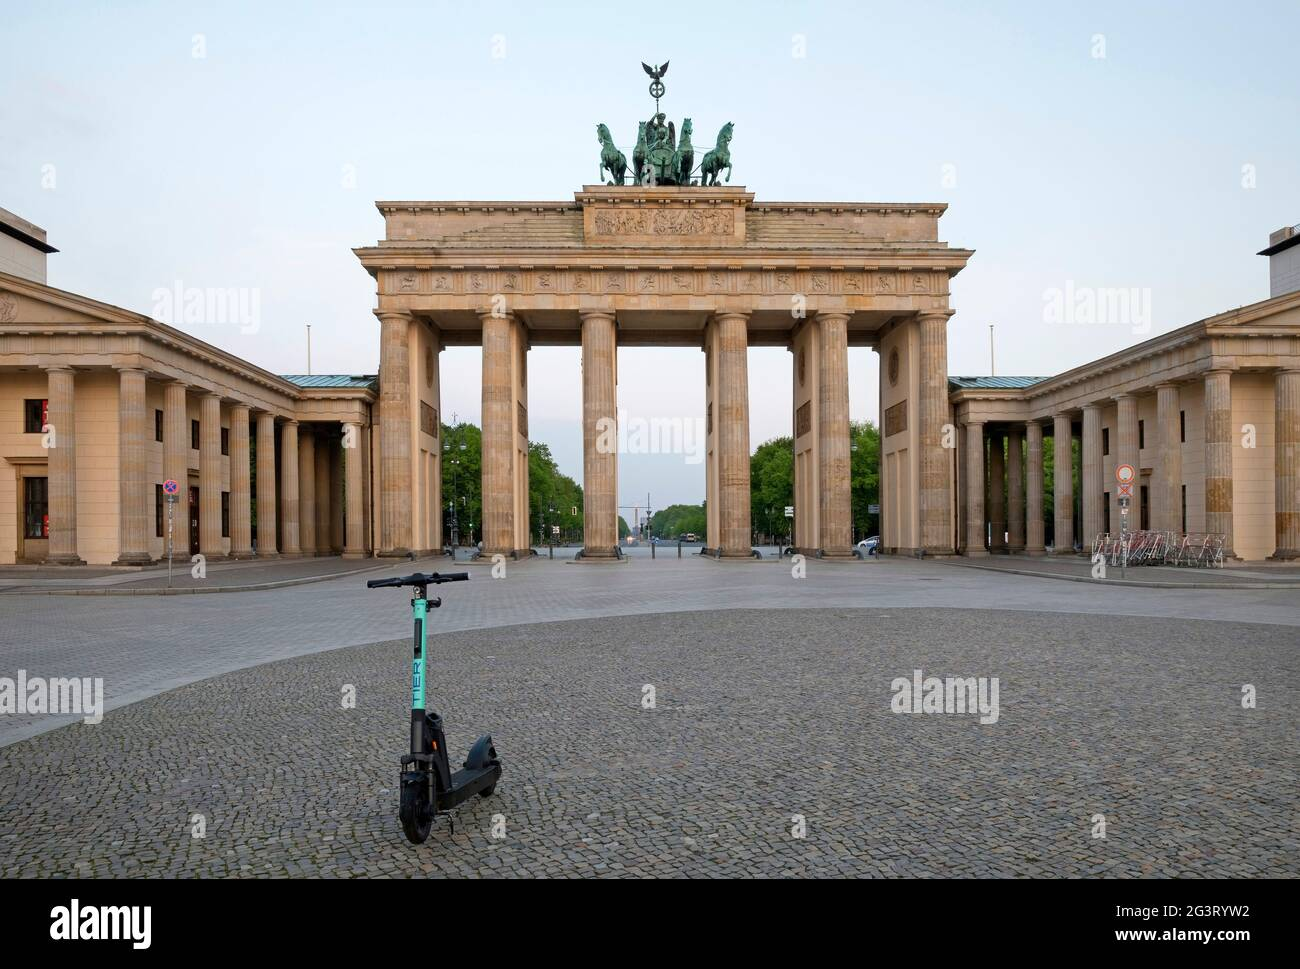 Brandenburger Tor with E-Scooter on Pariser Platz (Paris Square) early in the morning, Germany, Berlin Stock Photo